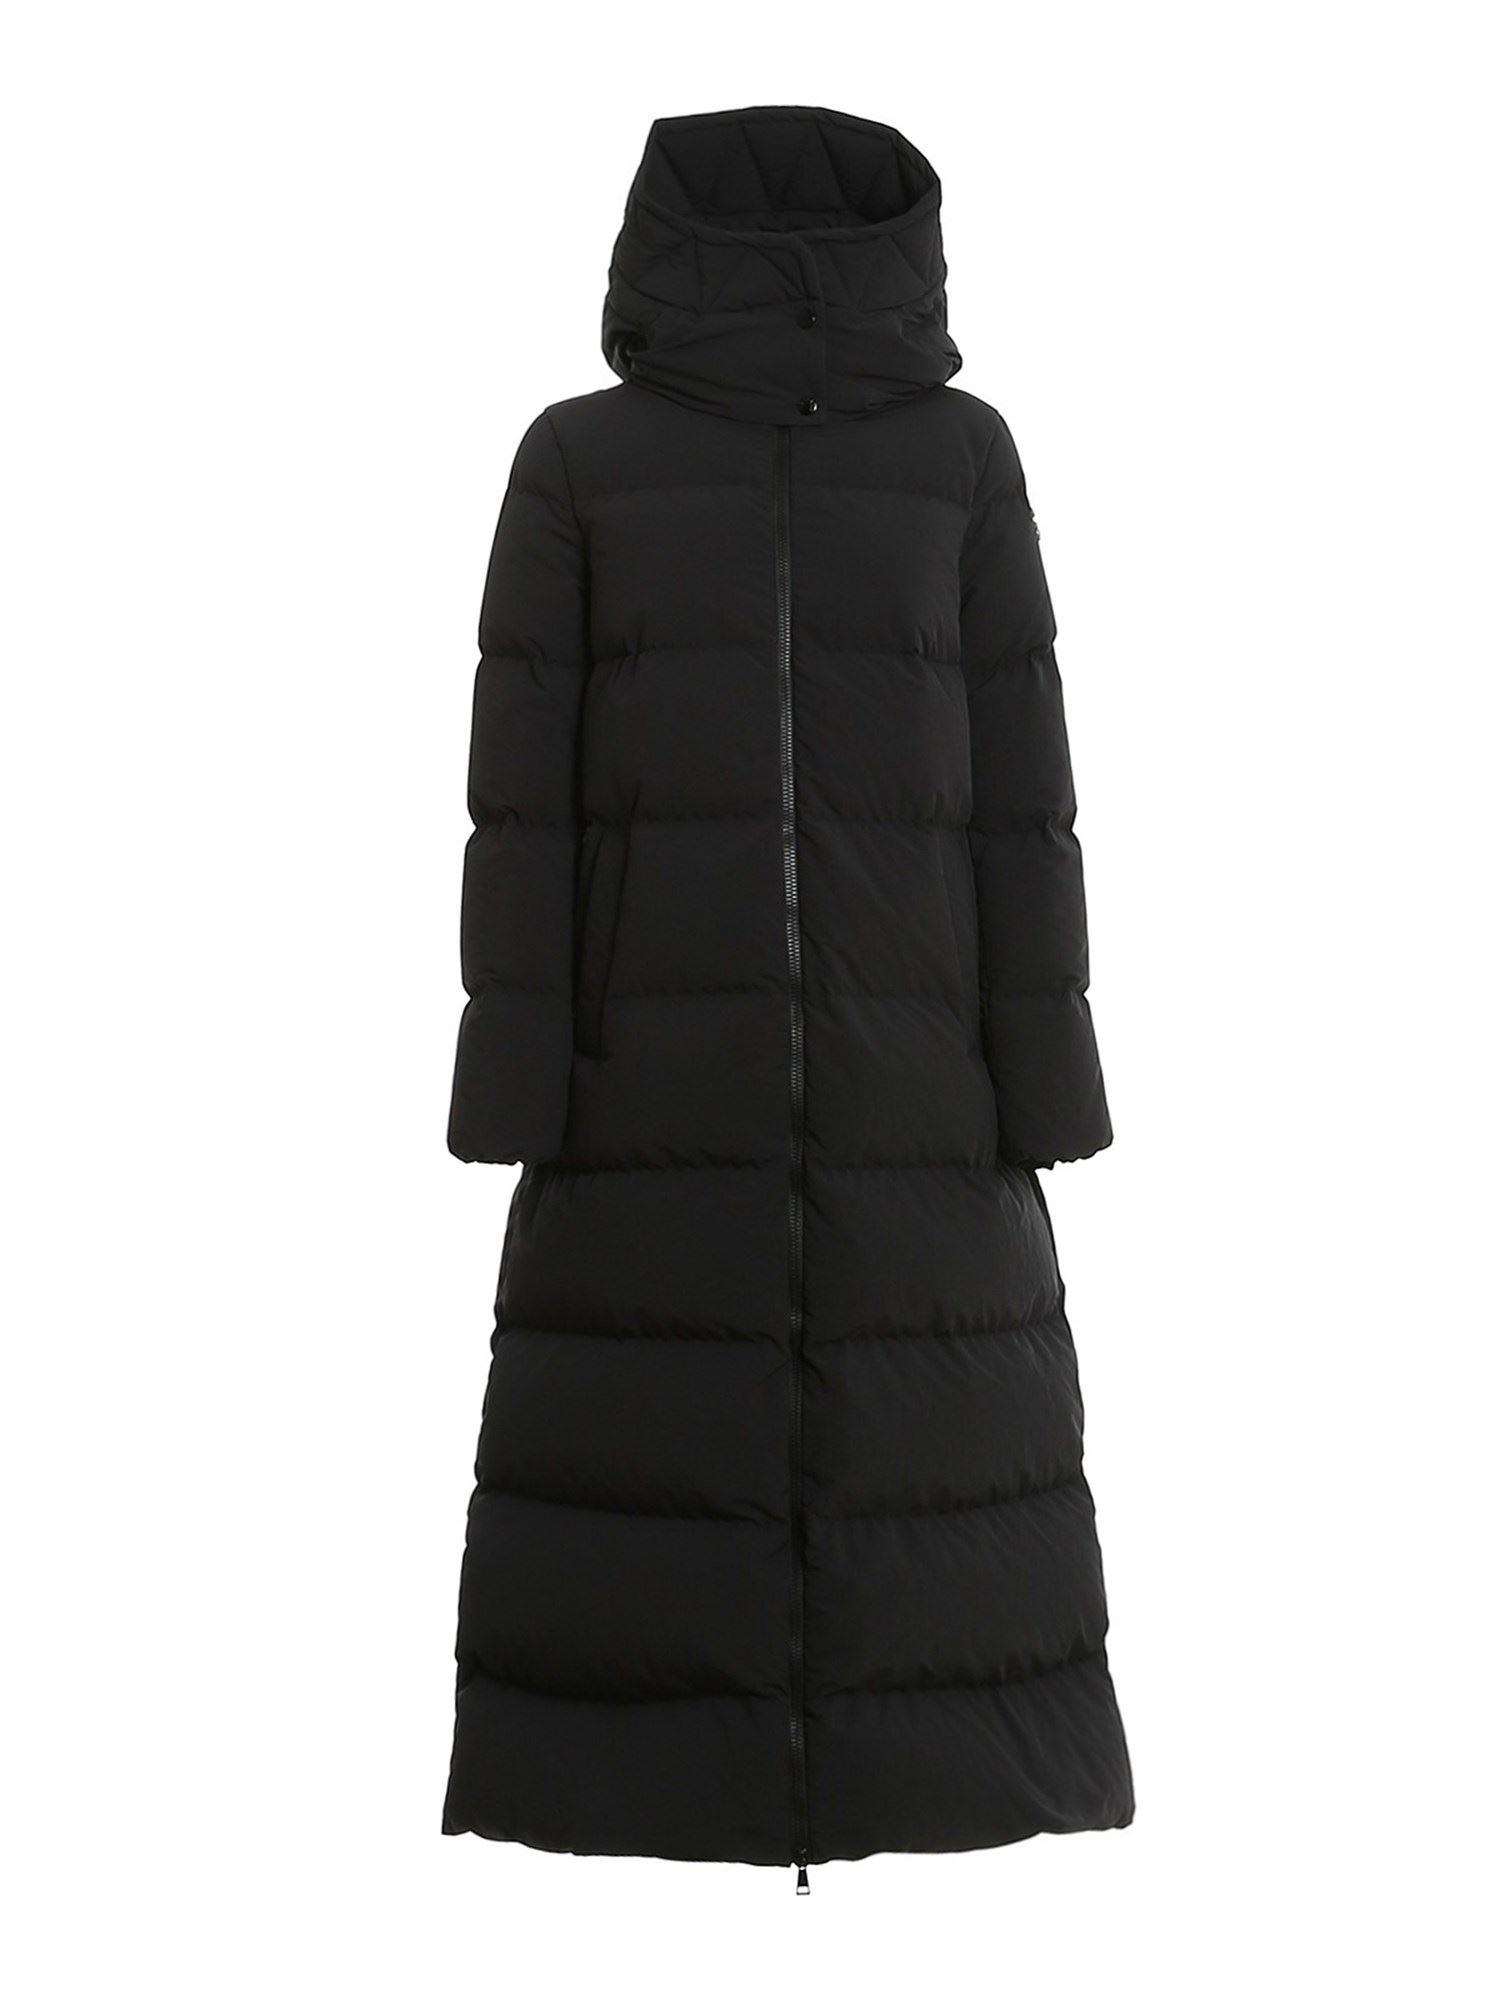 Moncler GOELO DOWN JACKET IN BLACK